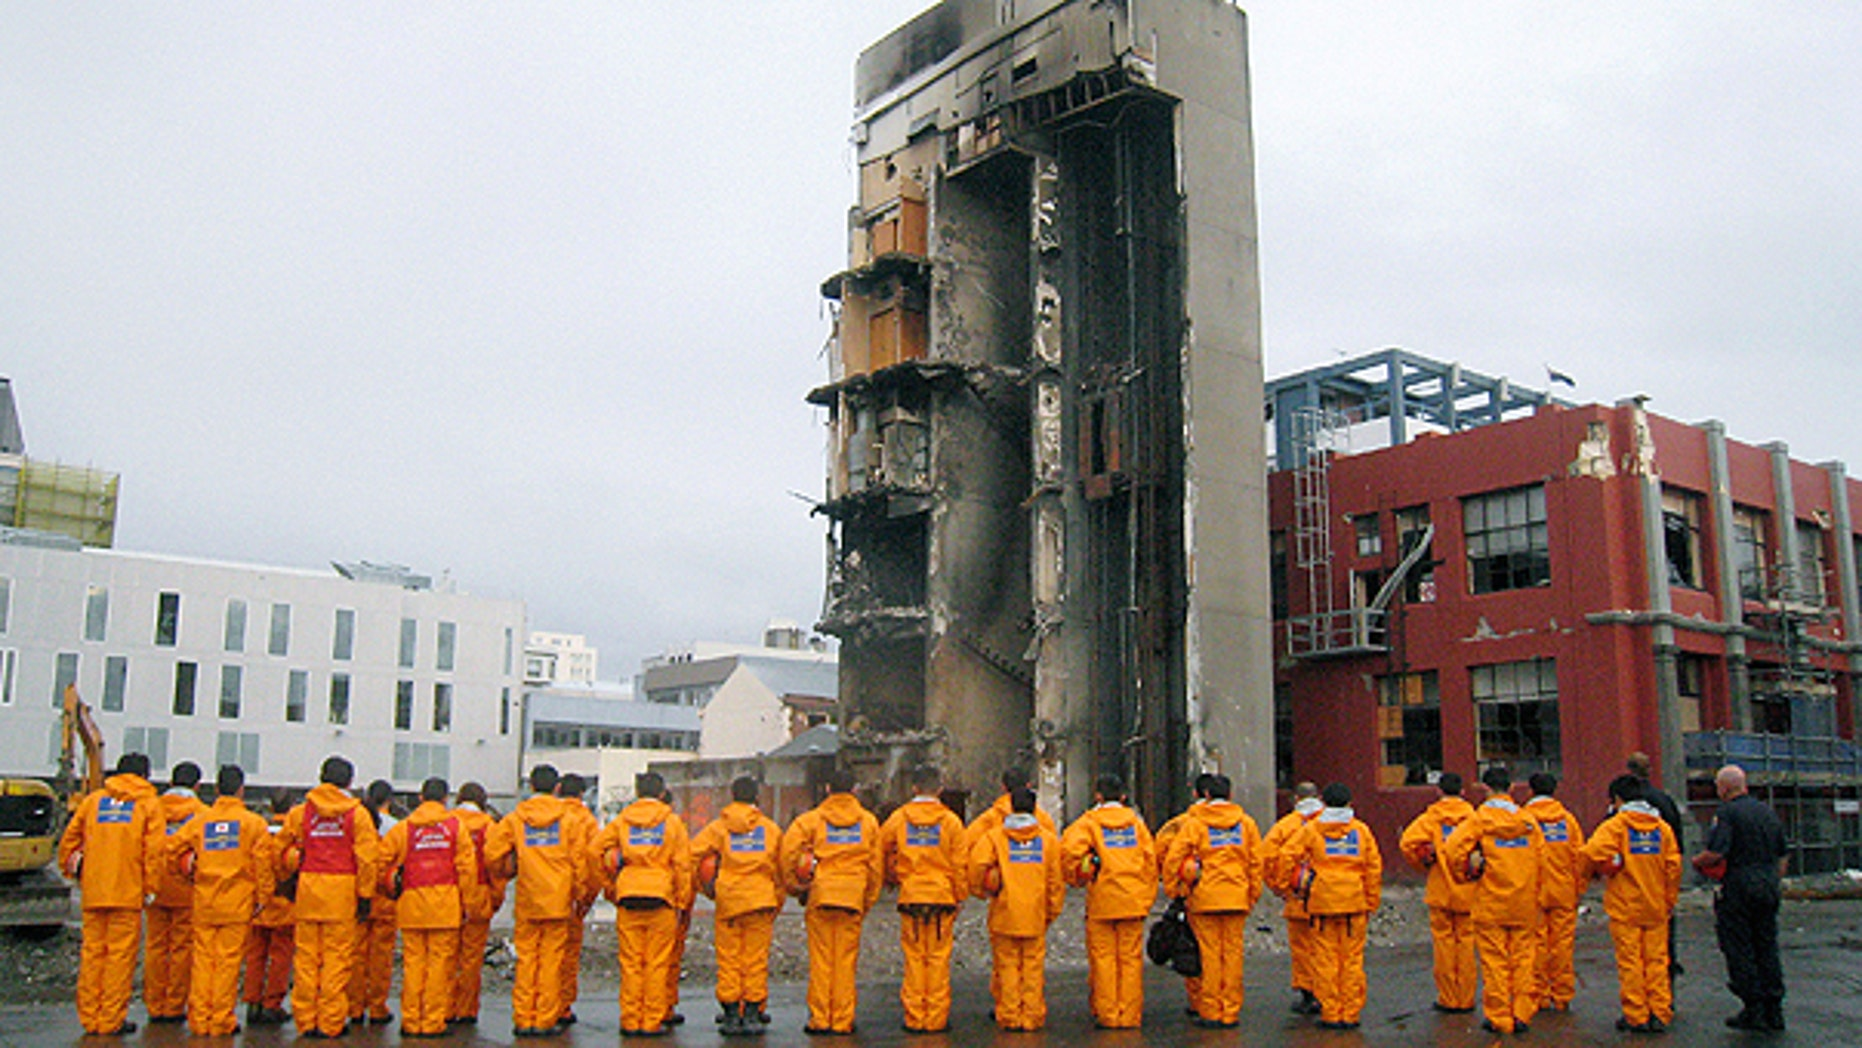 March 6: In this photo released by Japan Disaster Relief Team, its members observe a moment of silence near at the collapsed CTV building in Christchurch, New Zealand.